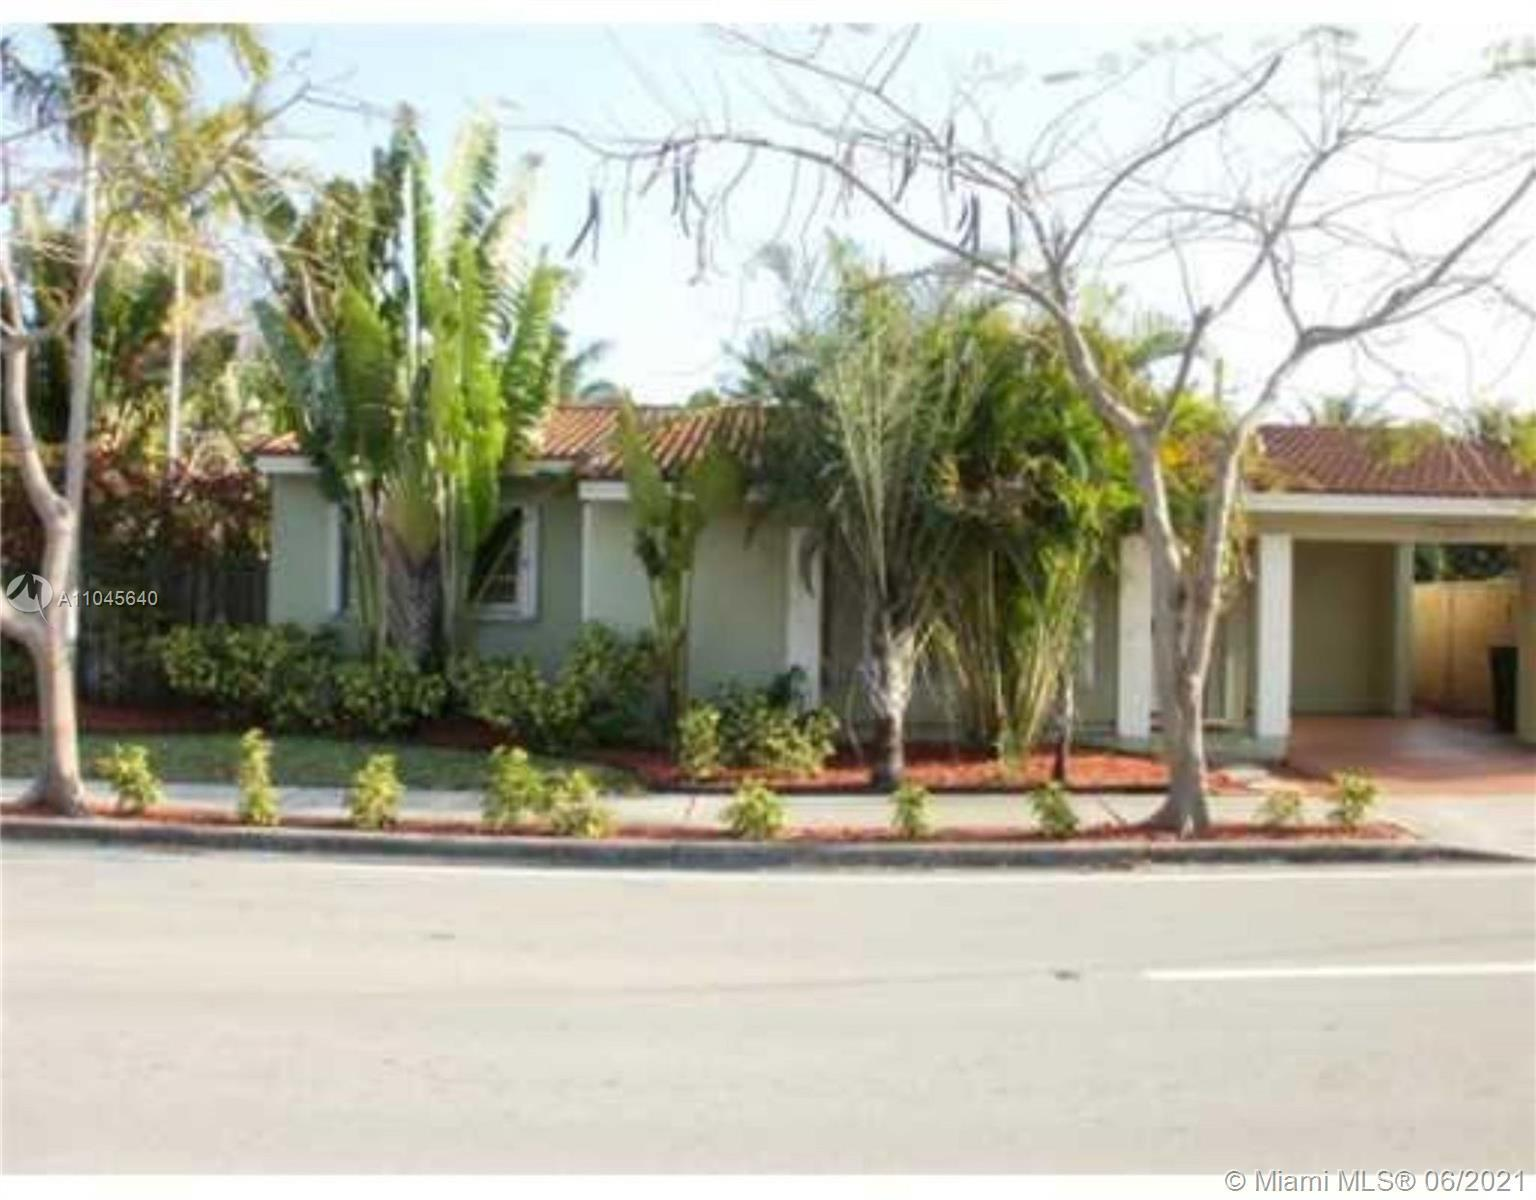 Rarely available 4 bedroom 2 bathroom house on a corner lot perfectly located just north of Sunrise